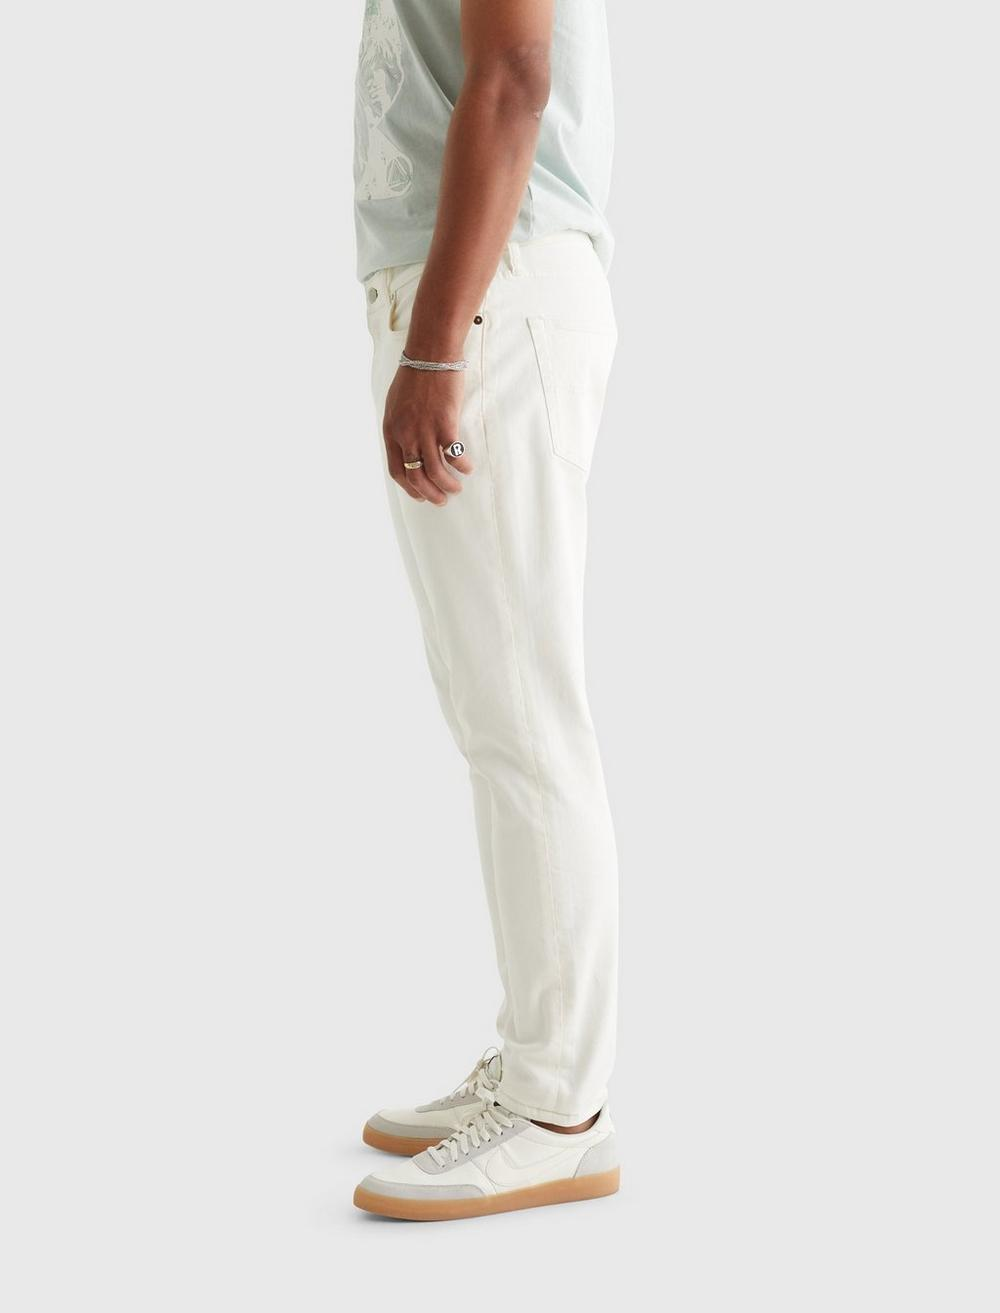 411 ATHLETIC TAPER COMFORT STRETCH JEAN, image 4